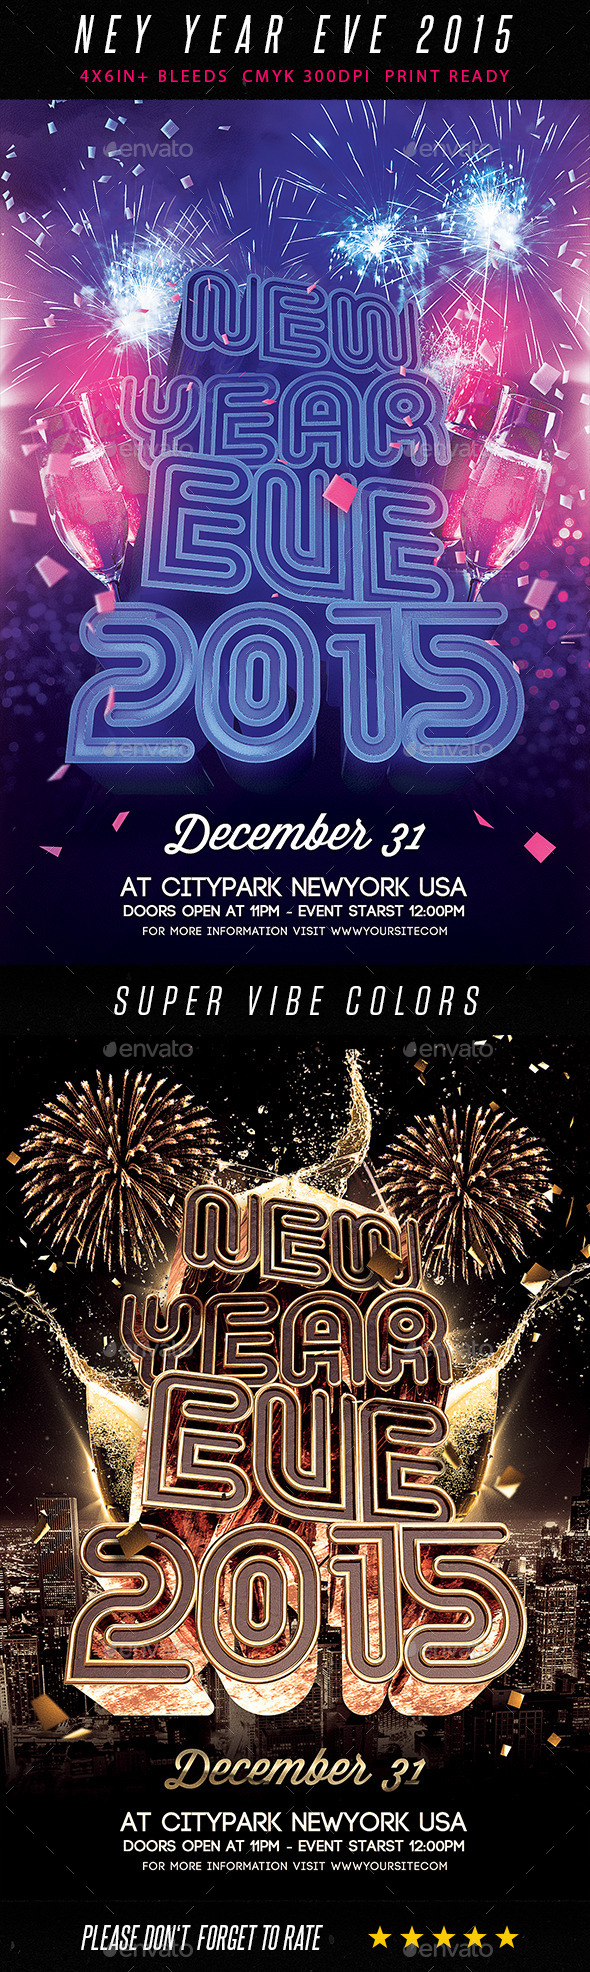 GraphicRiver New Year Eve 2015 Flyer 9374558